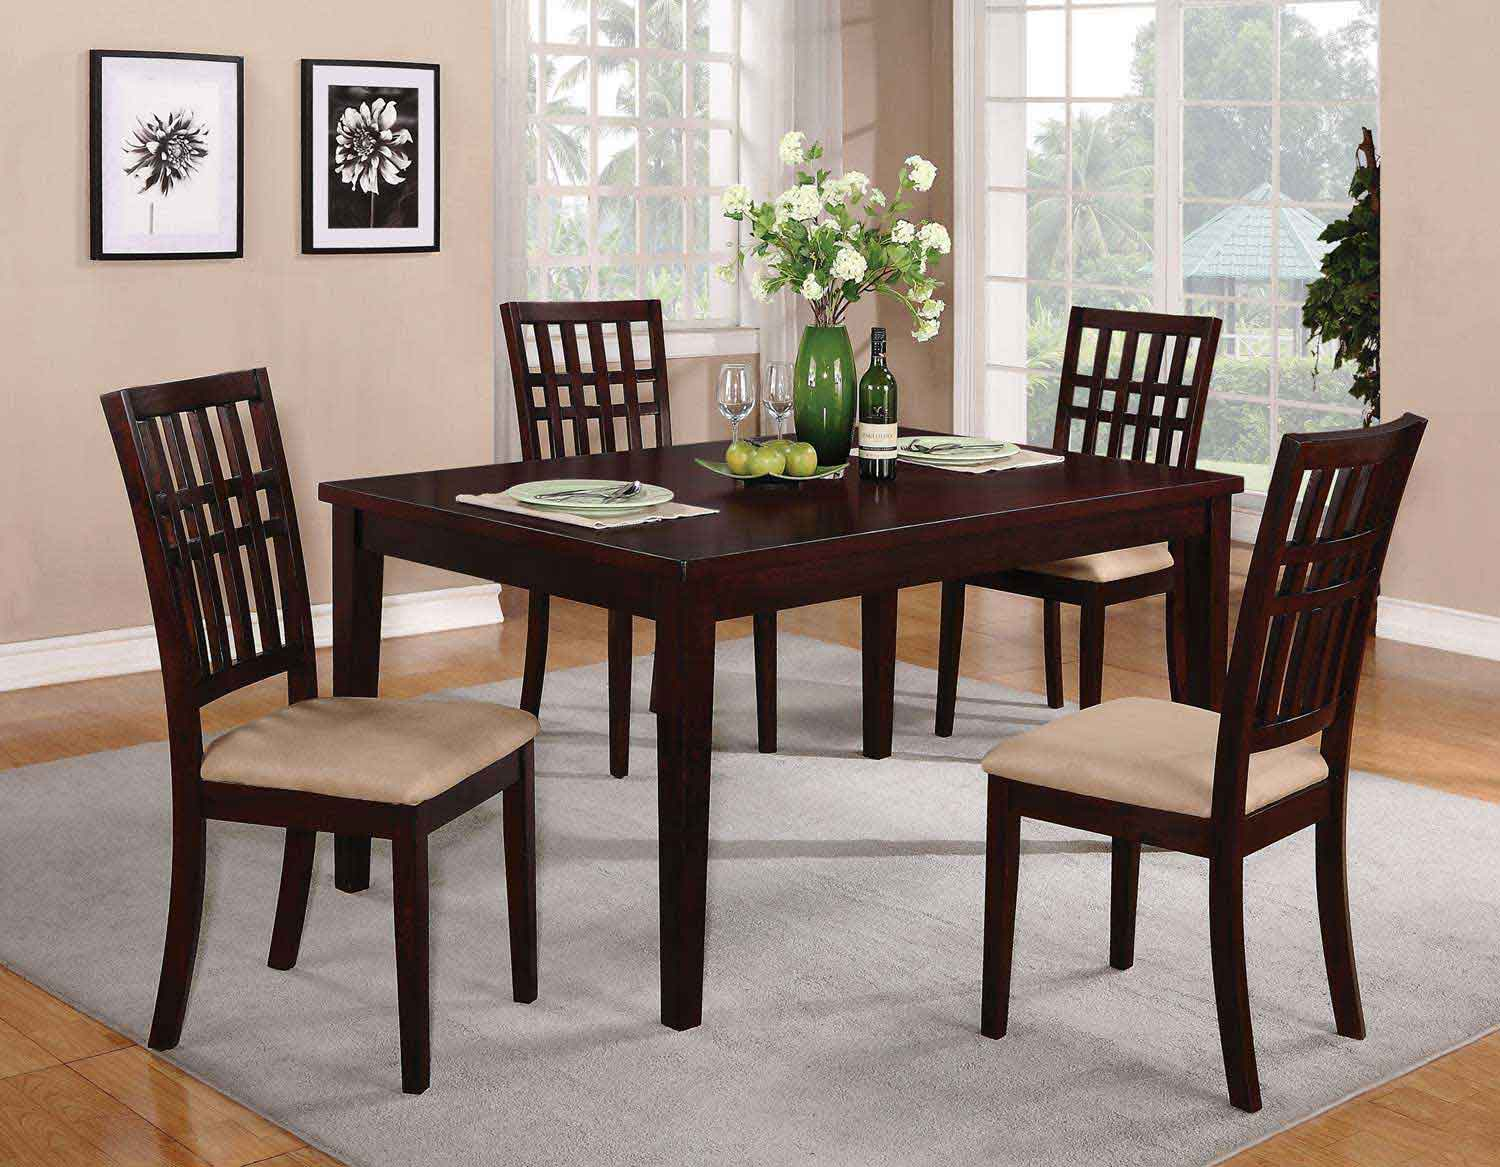 Coaster 103341 Dining Set - Dark Cherry